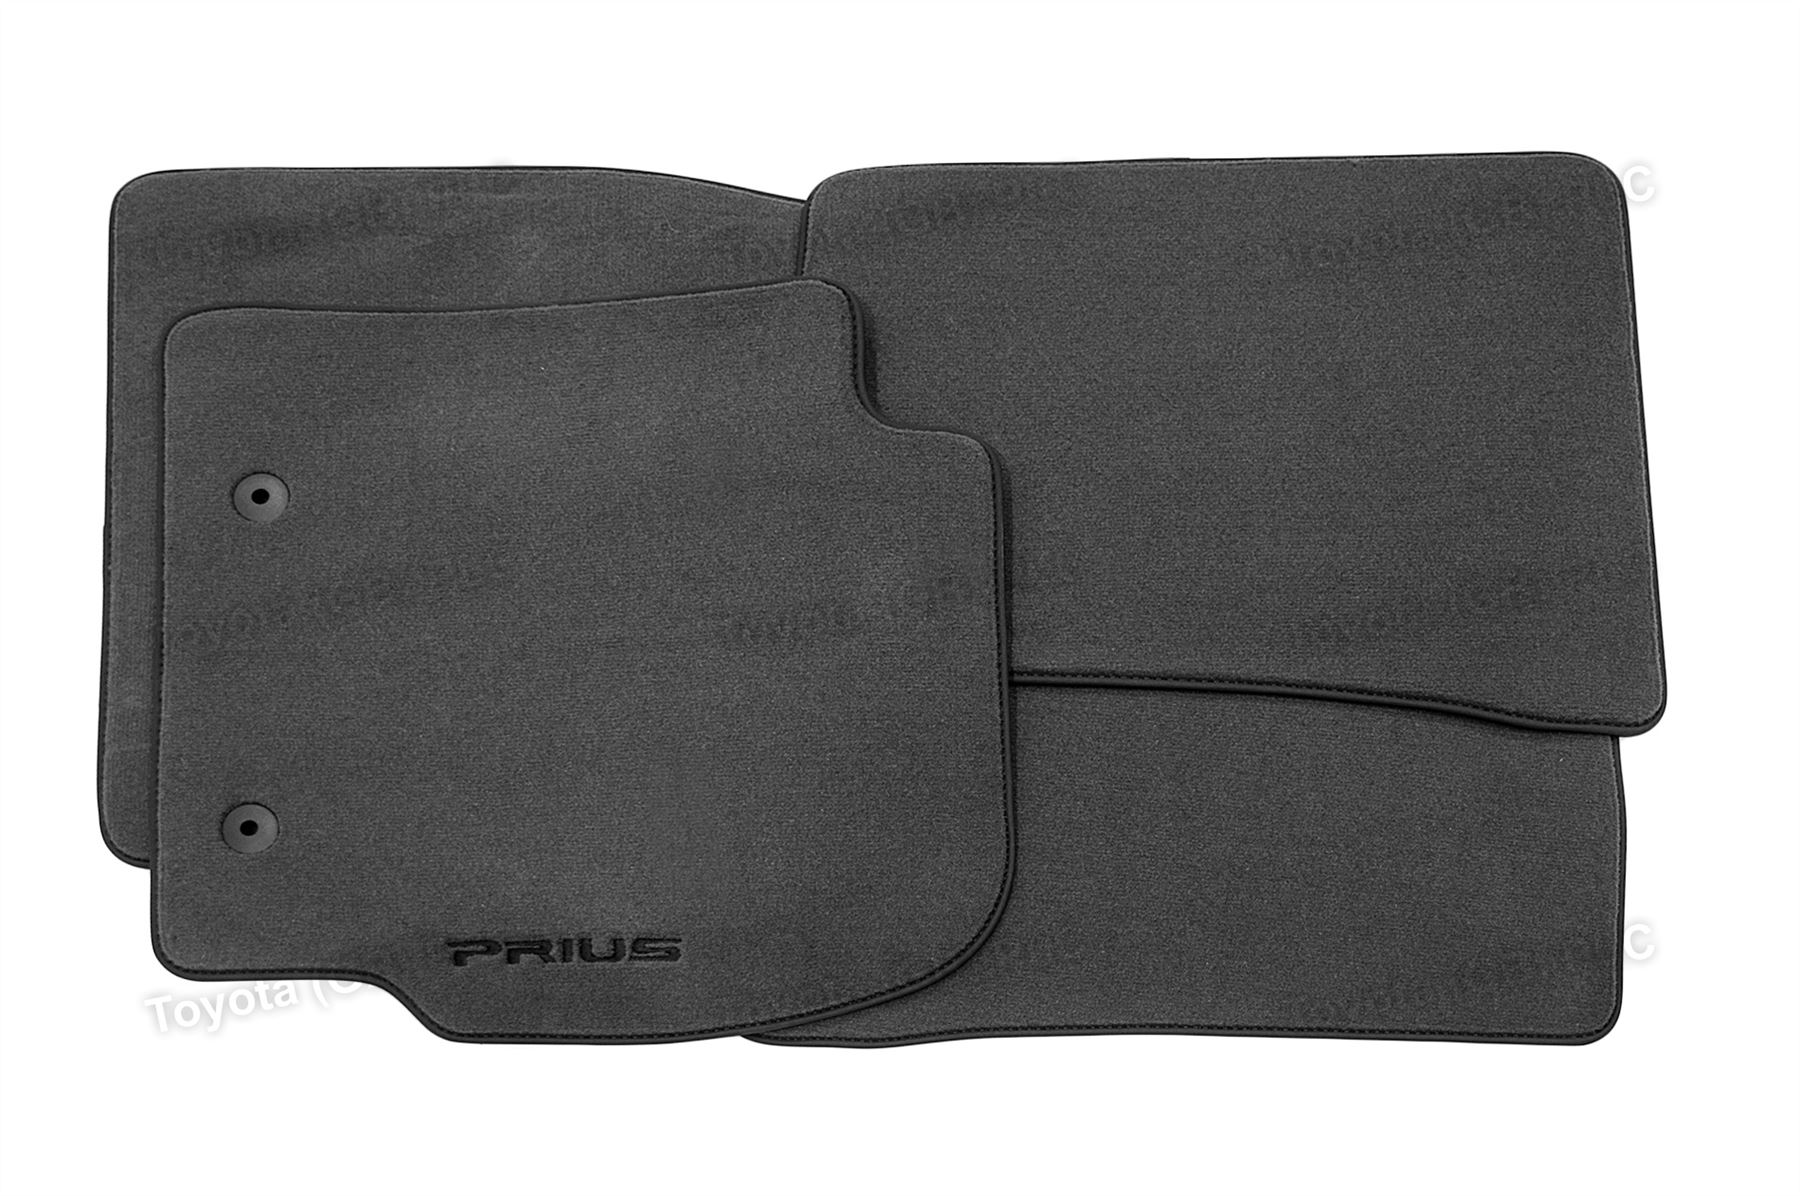 Genuine toyota luxury prius carpet floor car mats 05 09 for Original toyota floor mats